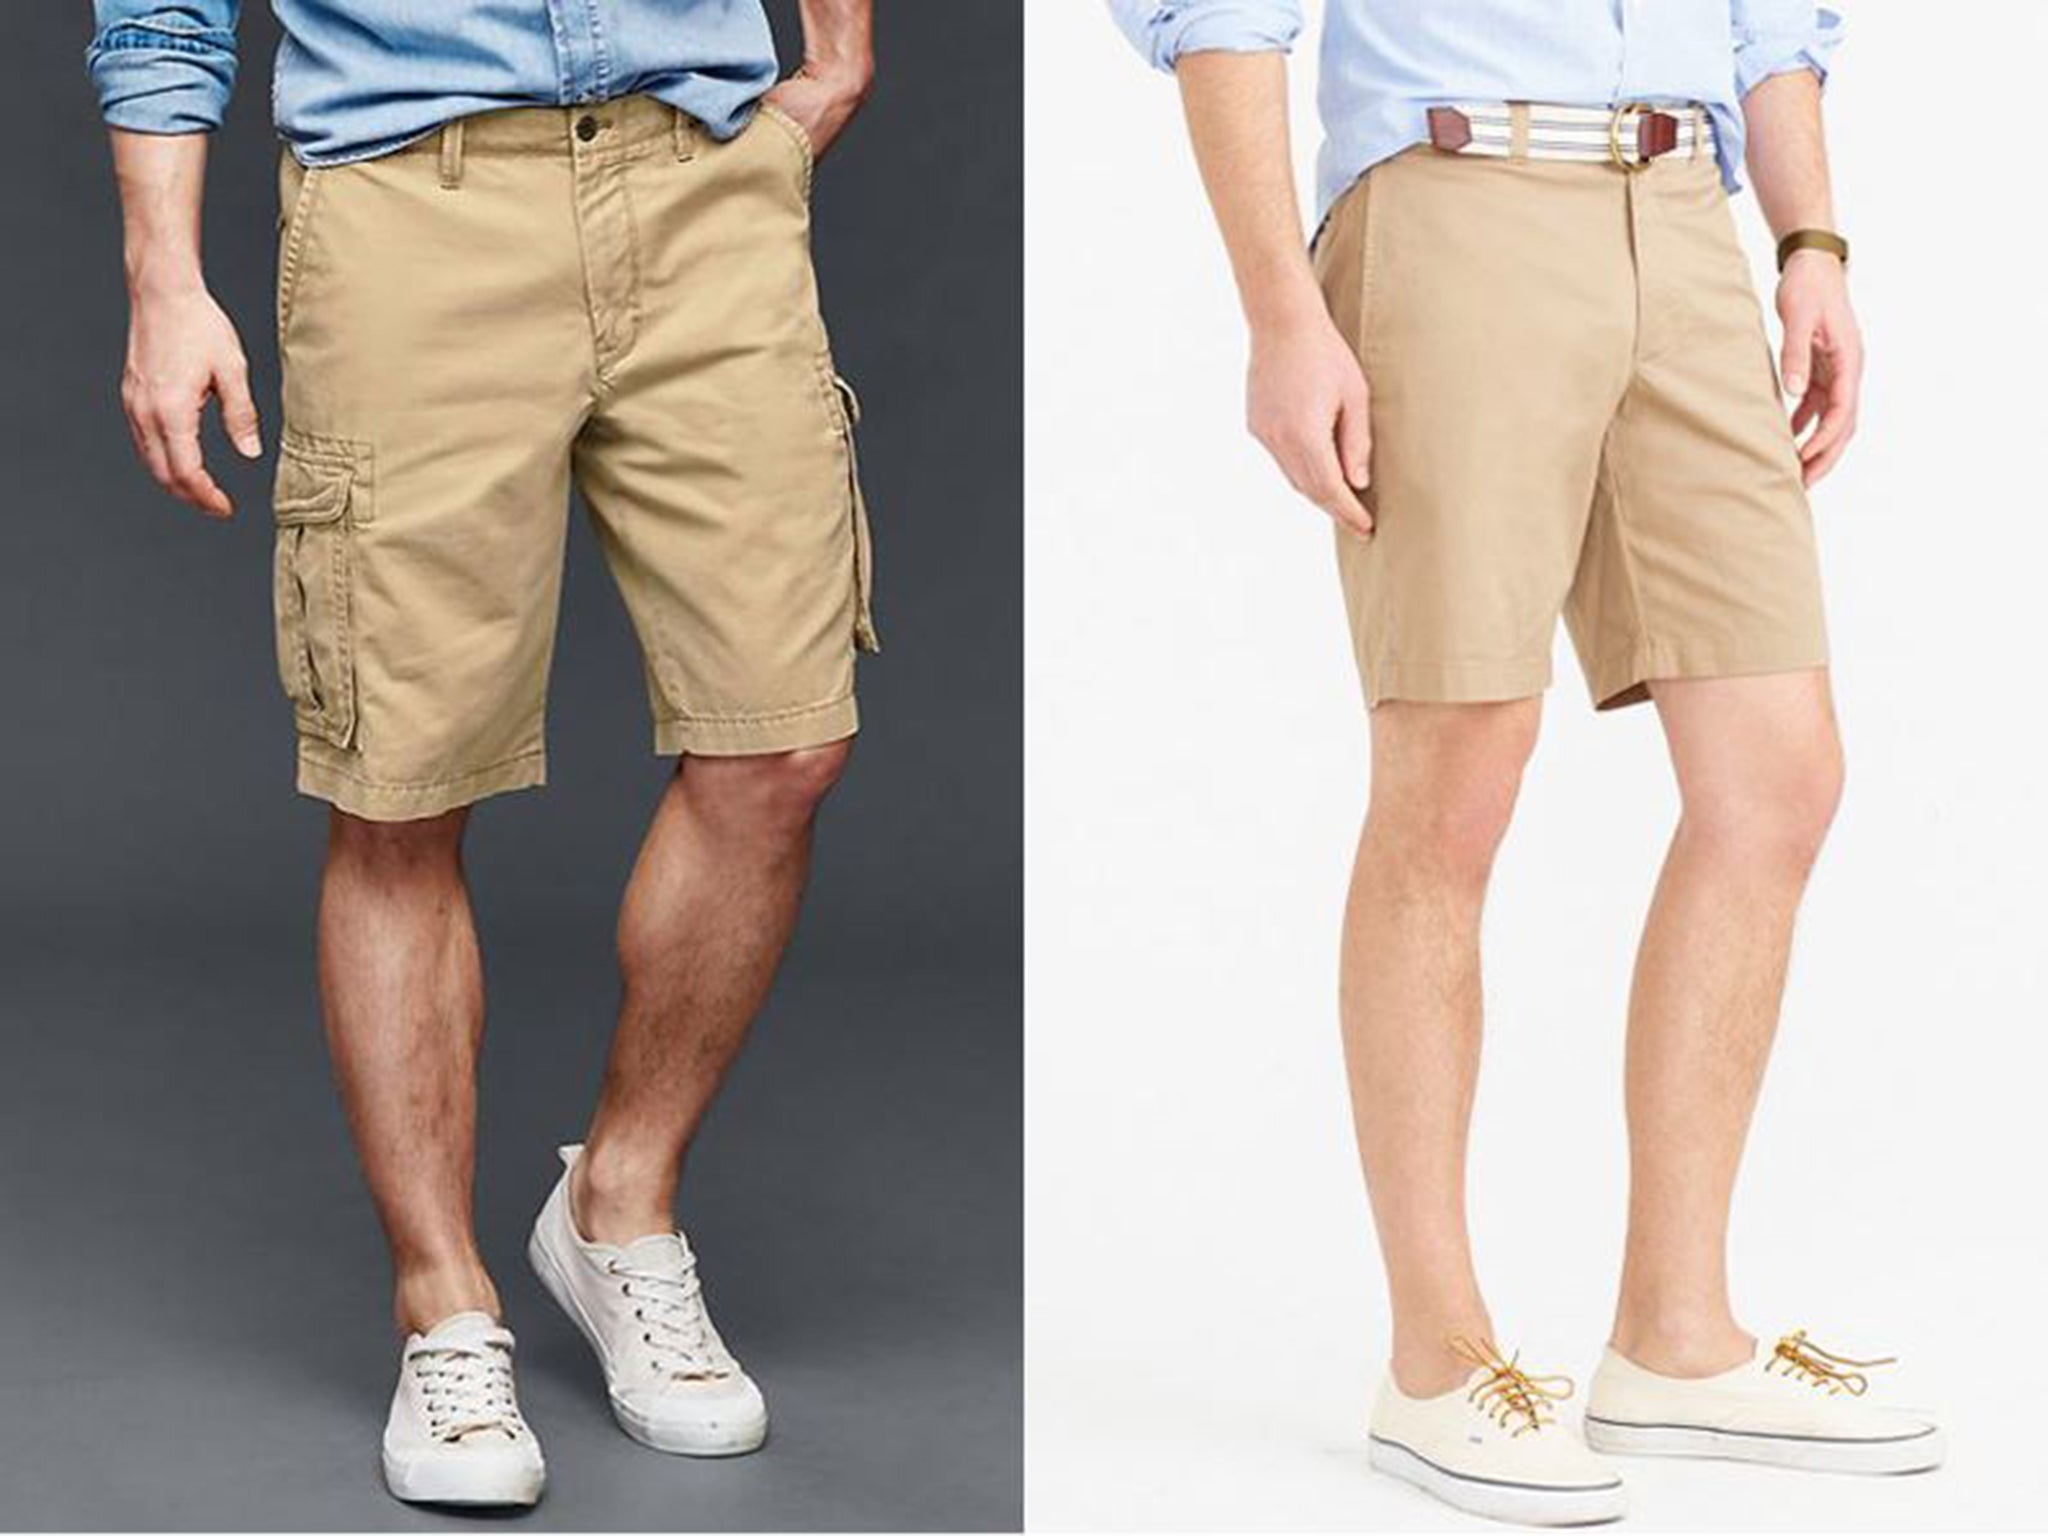 7 Things No Man Should Wear In The Spring And What They Should